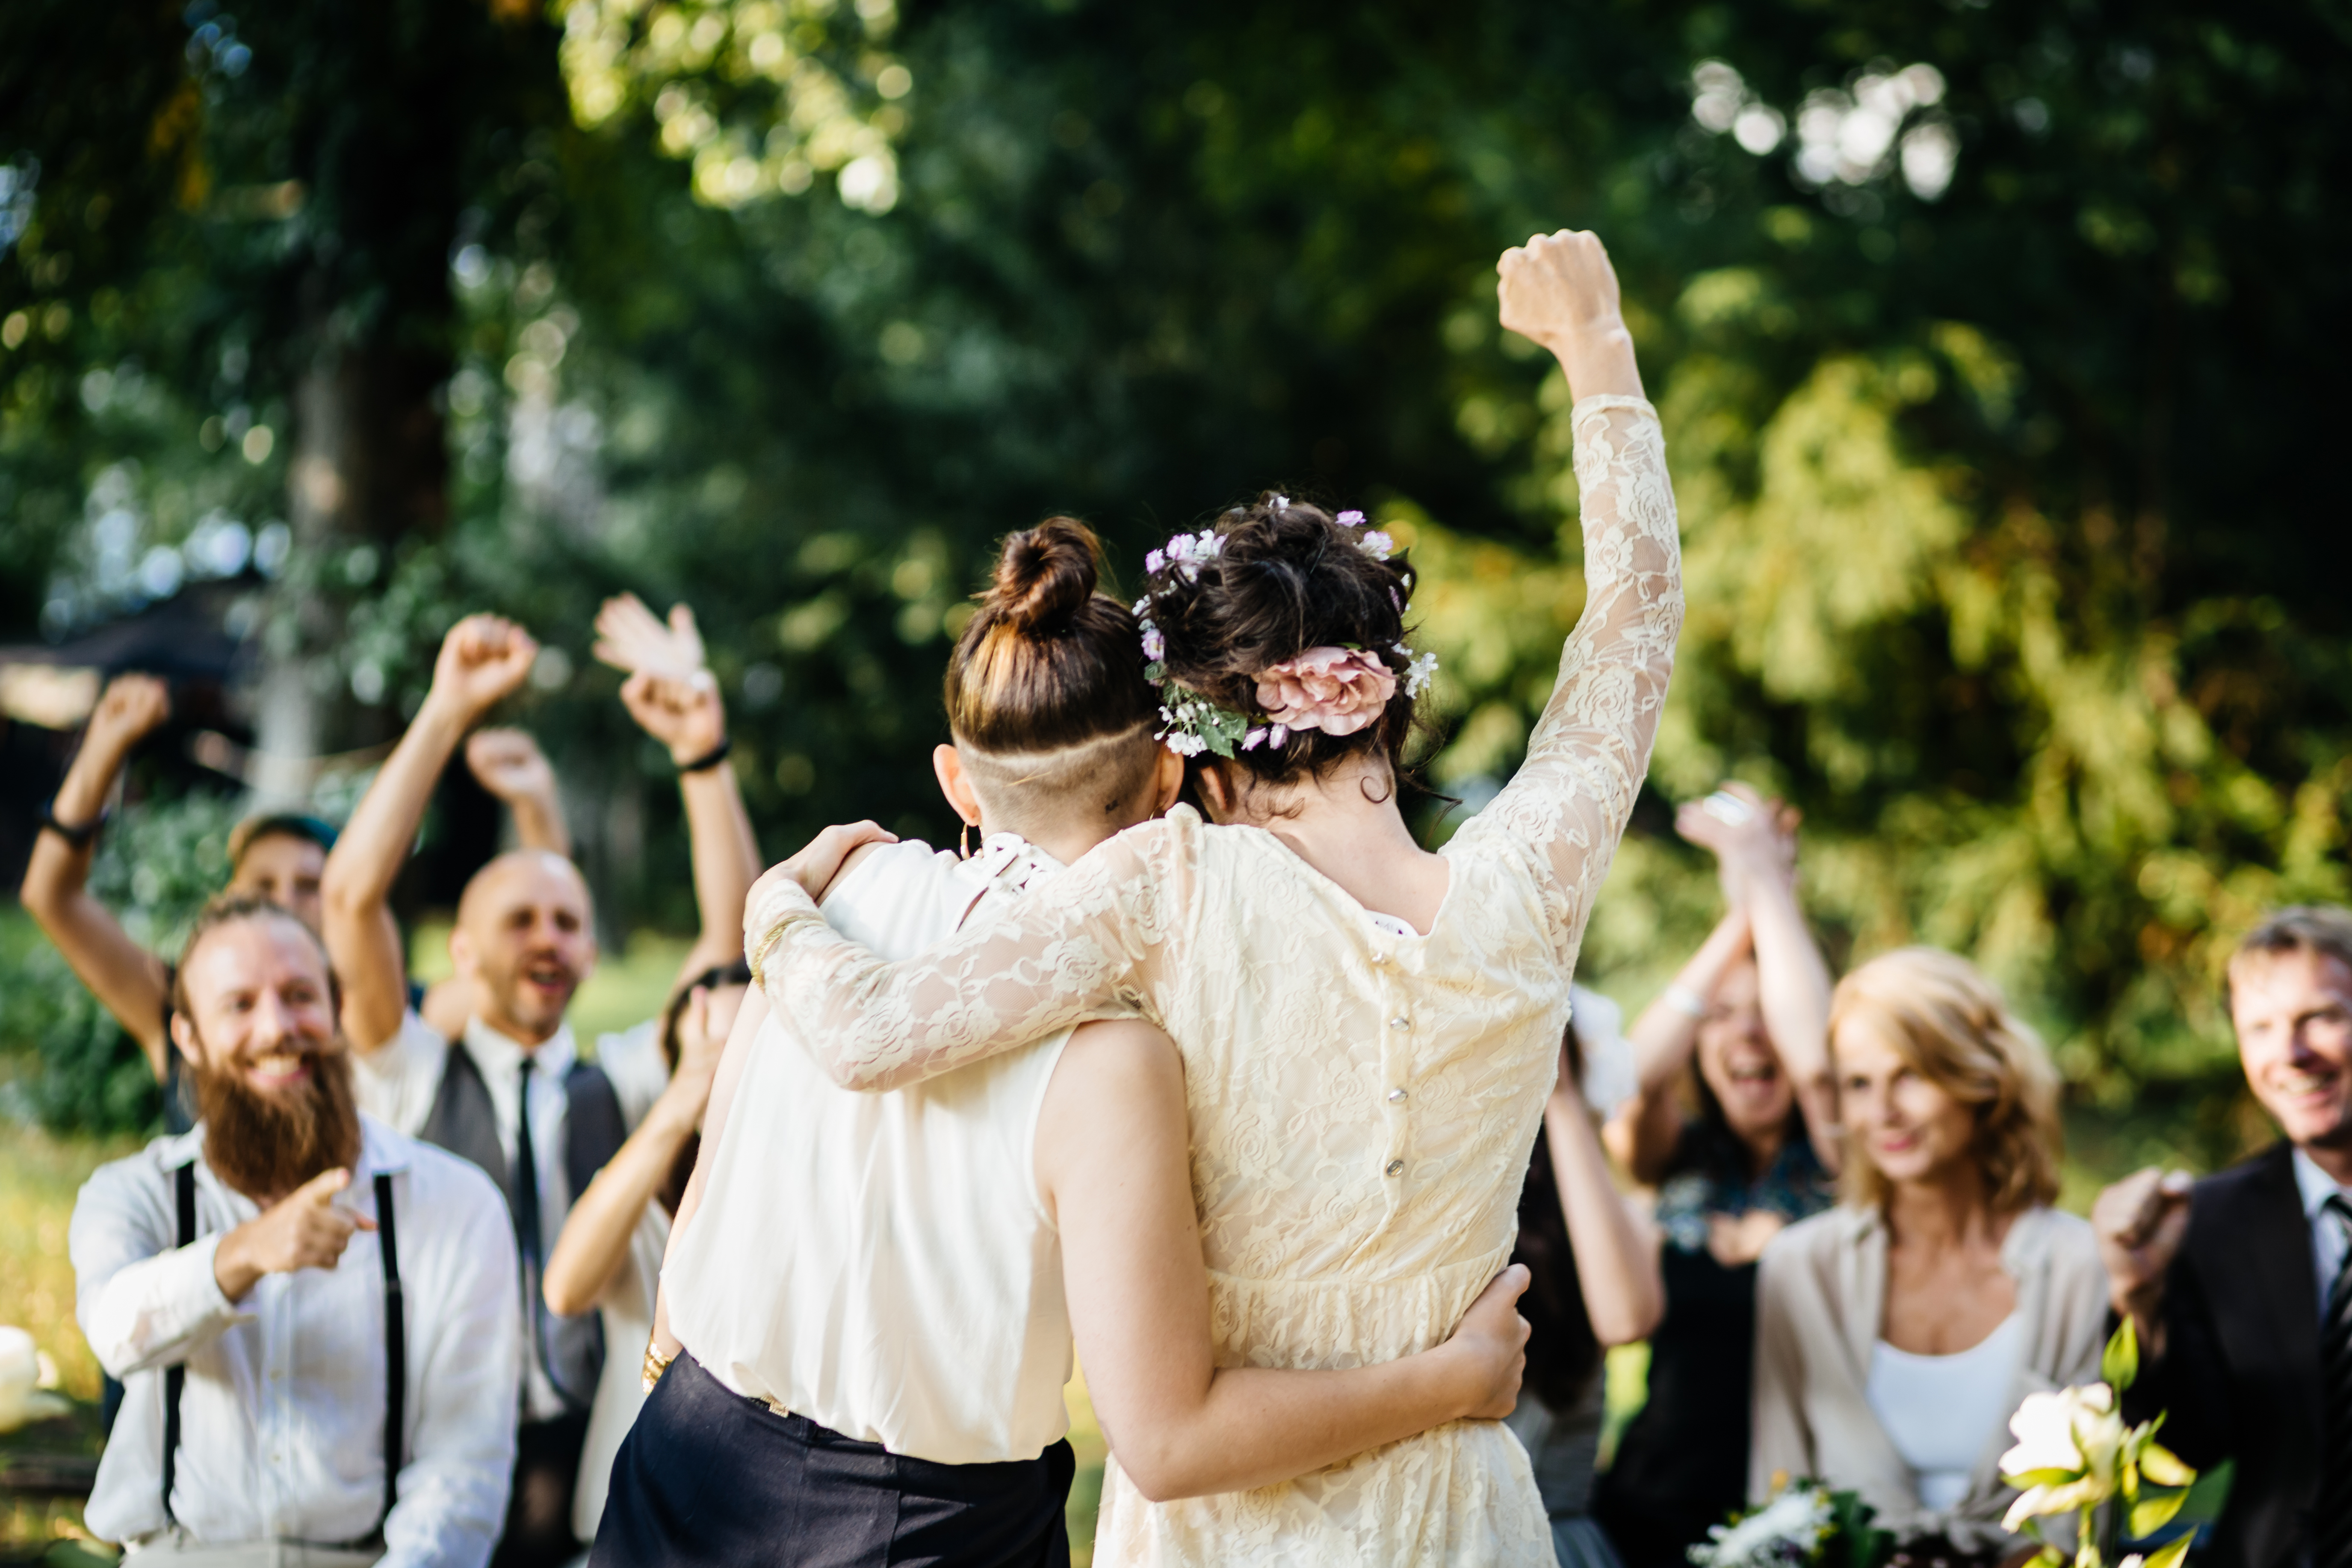 How Much Does The Average Wedding Cost Nerdwallet